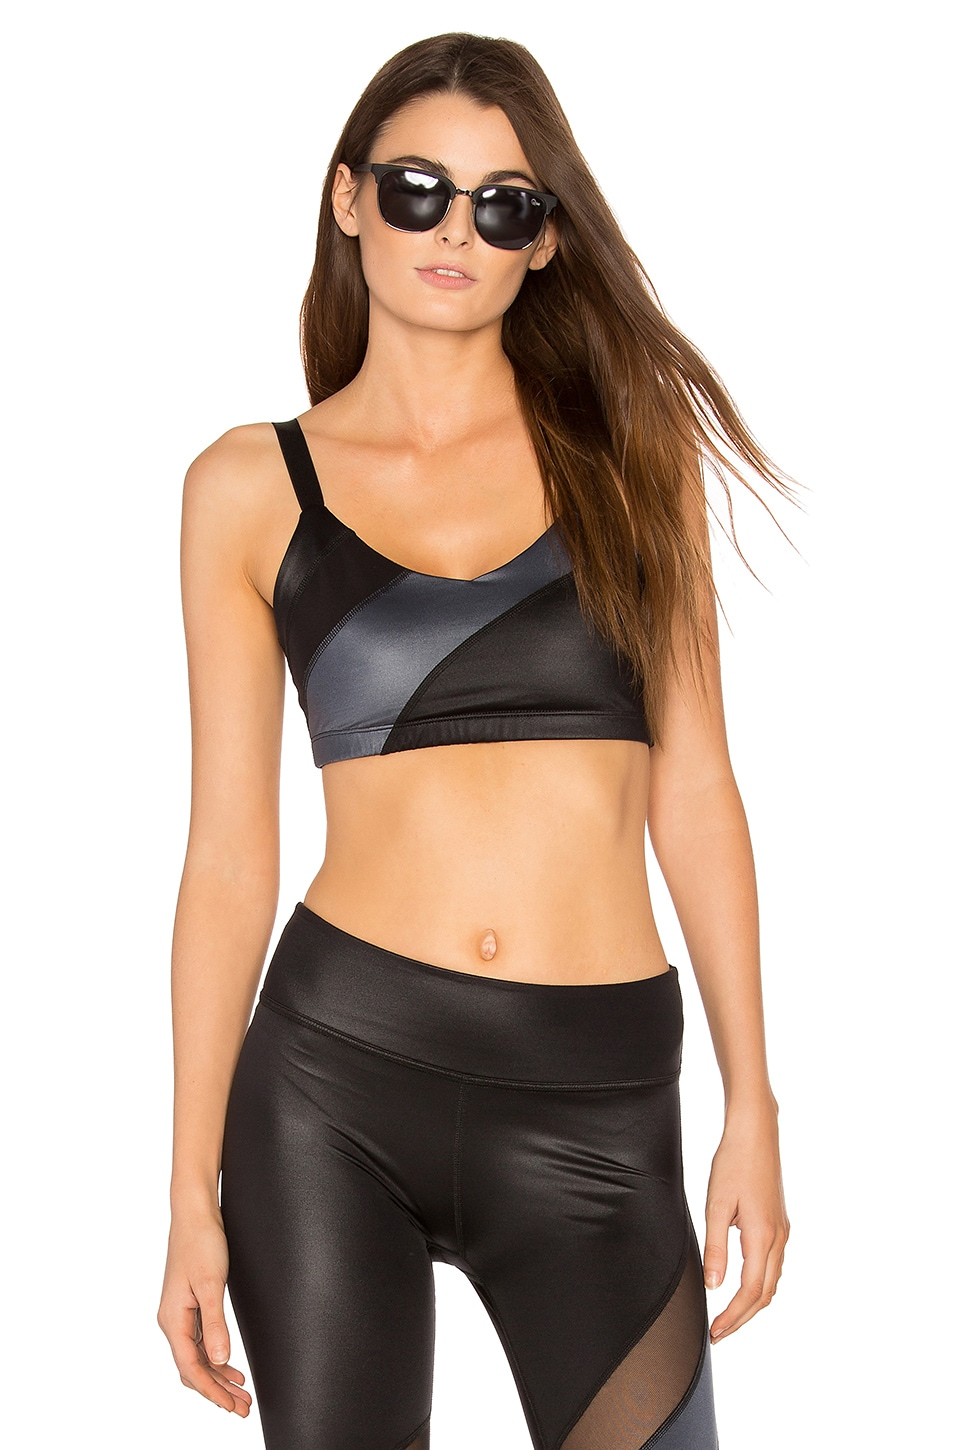 Gloss Over Waves Sports Bra by Beyond Yoga